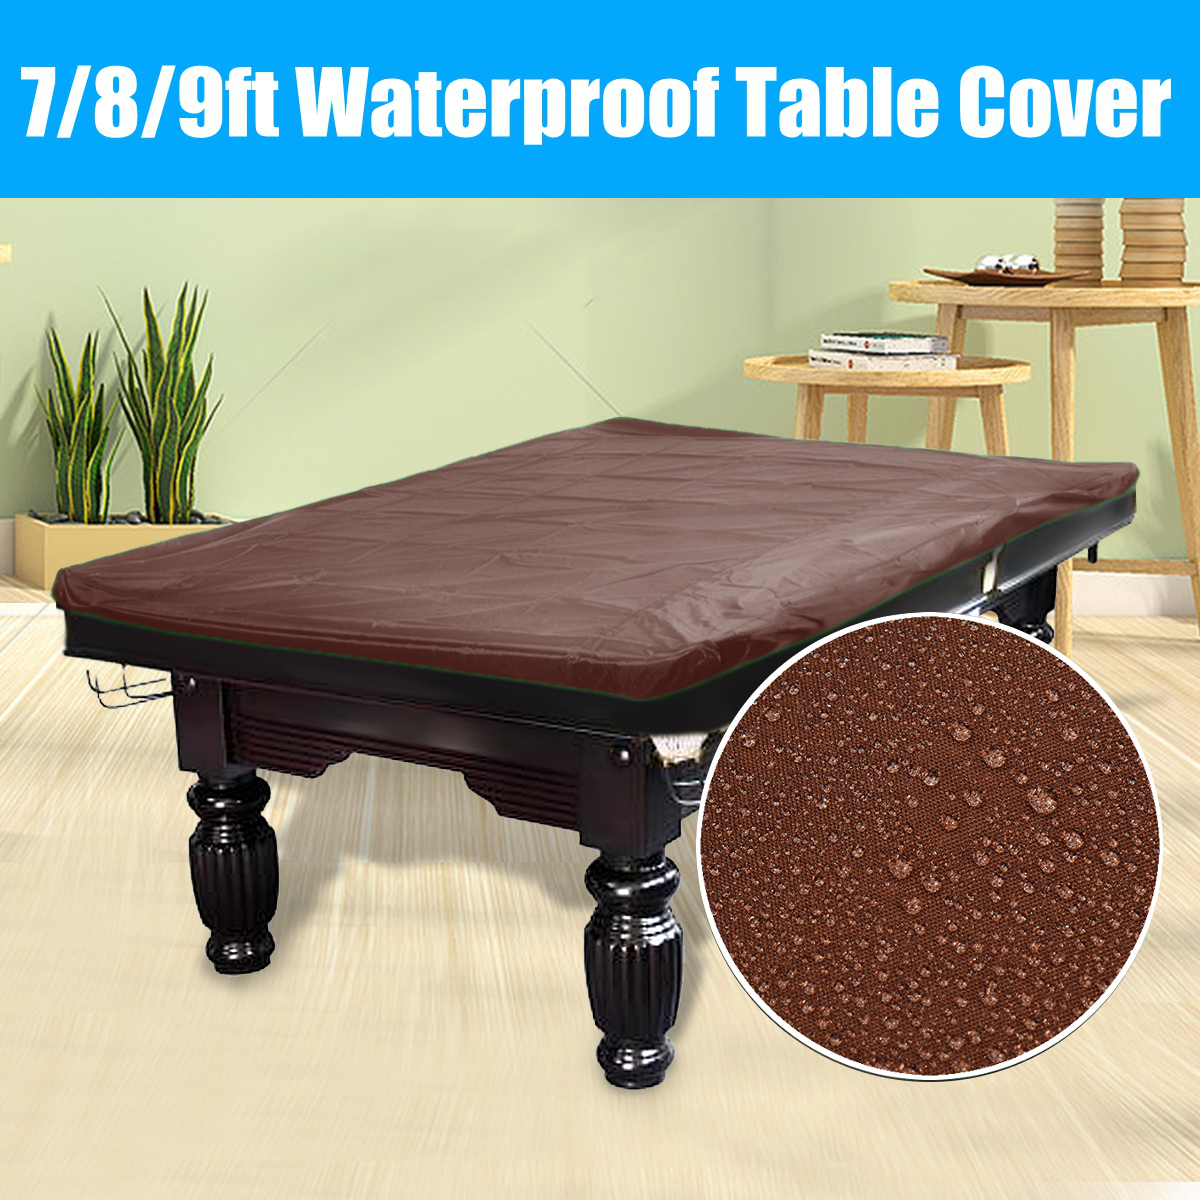 9 Foot Billiard Table Cover Black 9 Heavy Duty Leatherette Pool Table Cover